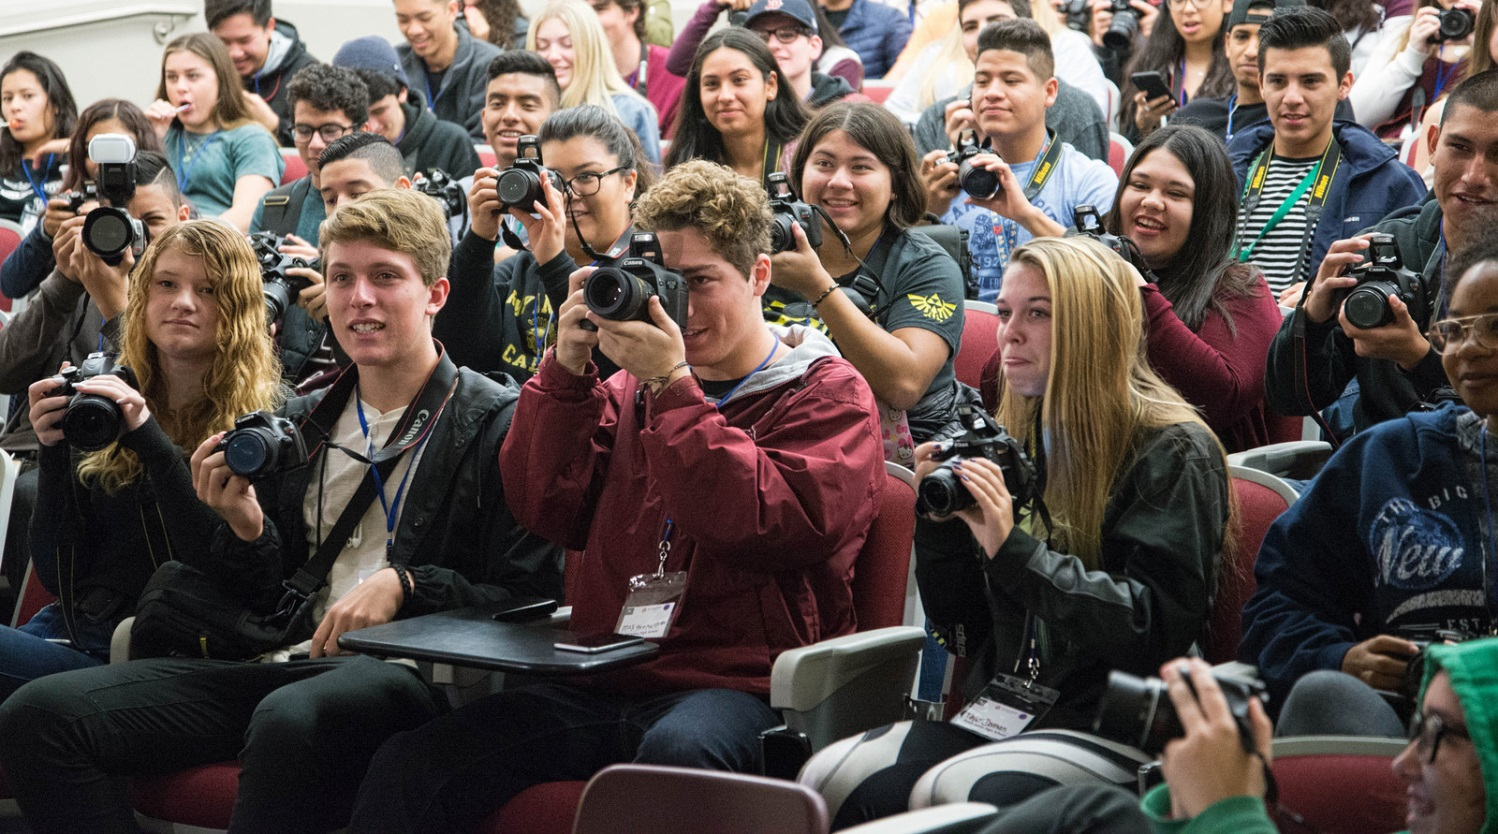 Students hold up their cameras to take a picture.